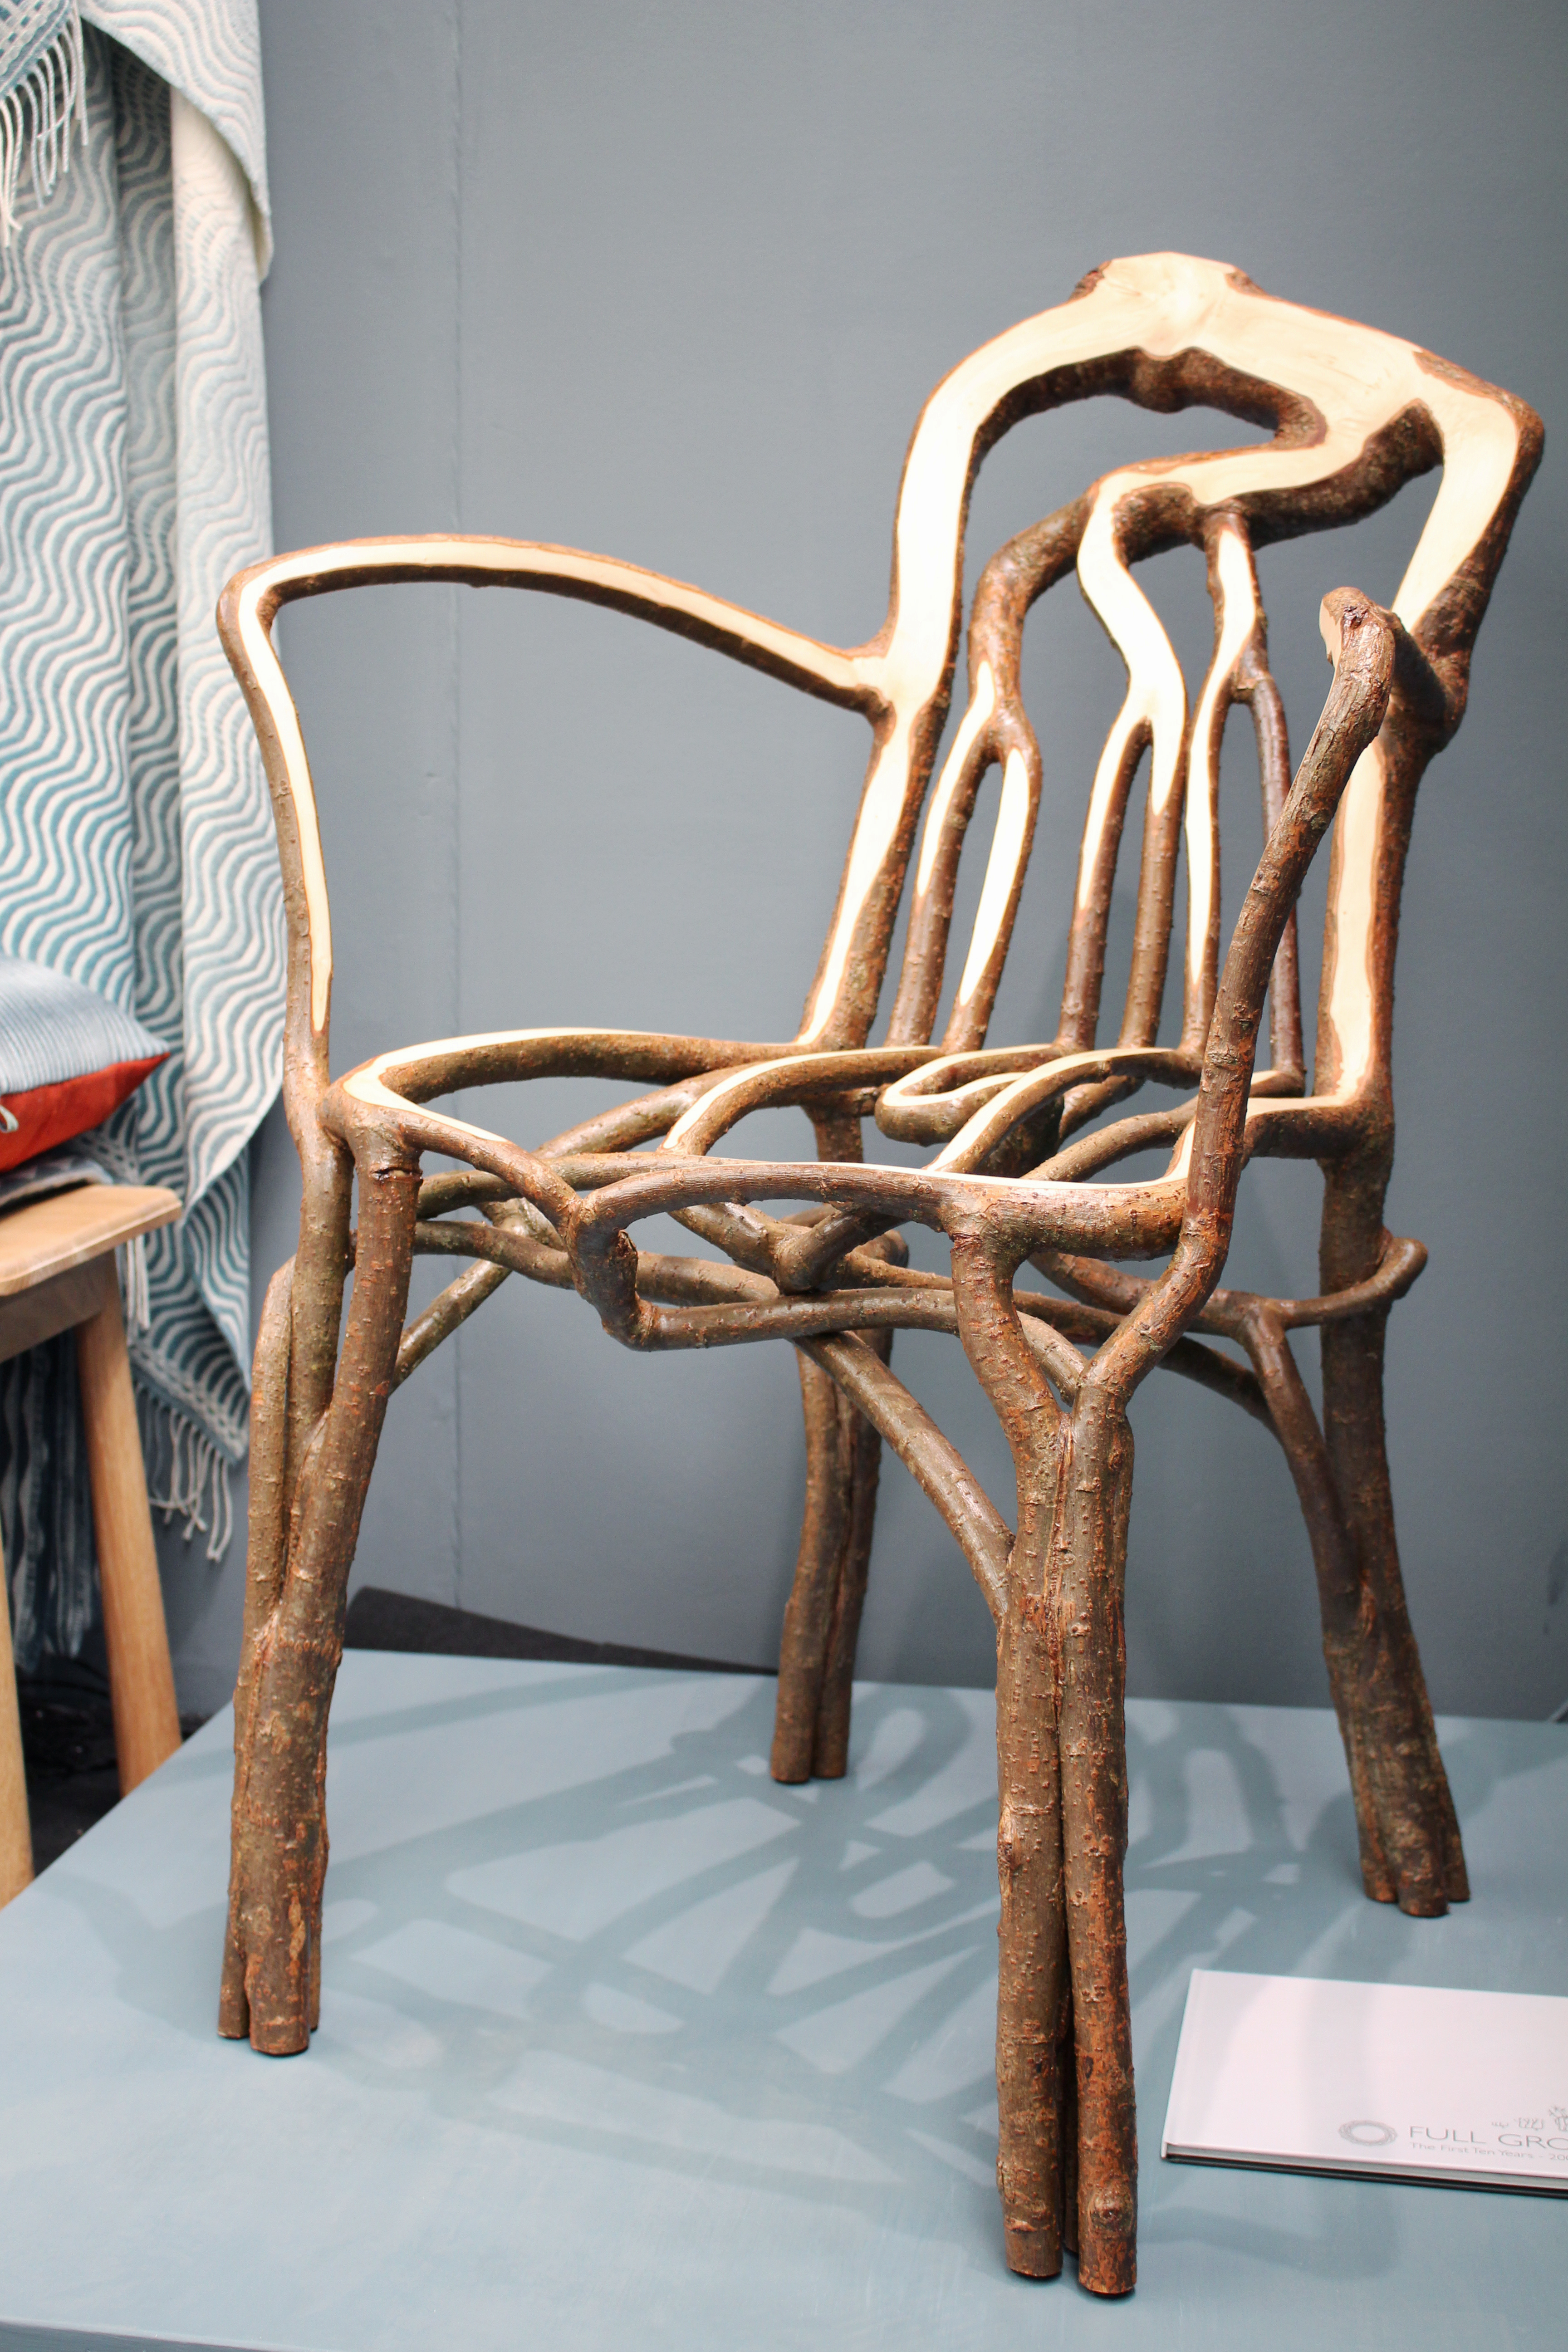 Finished Full Grown chair is pictured on display at the London Design Fair in London, Britain, September 19, 2019. Picture taken September 19, 2019. REUTERS/George Sargent